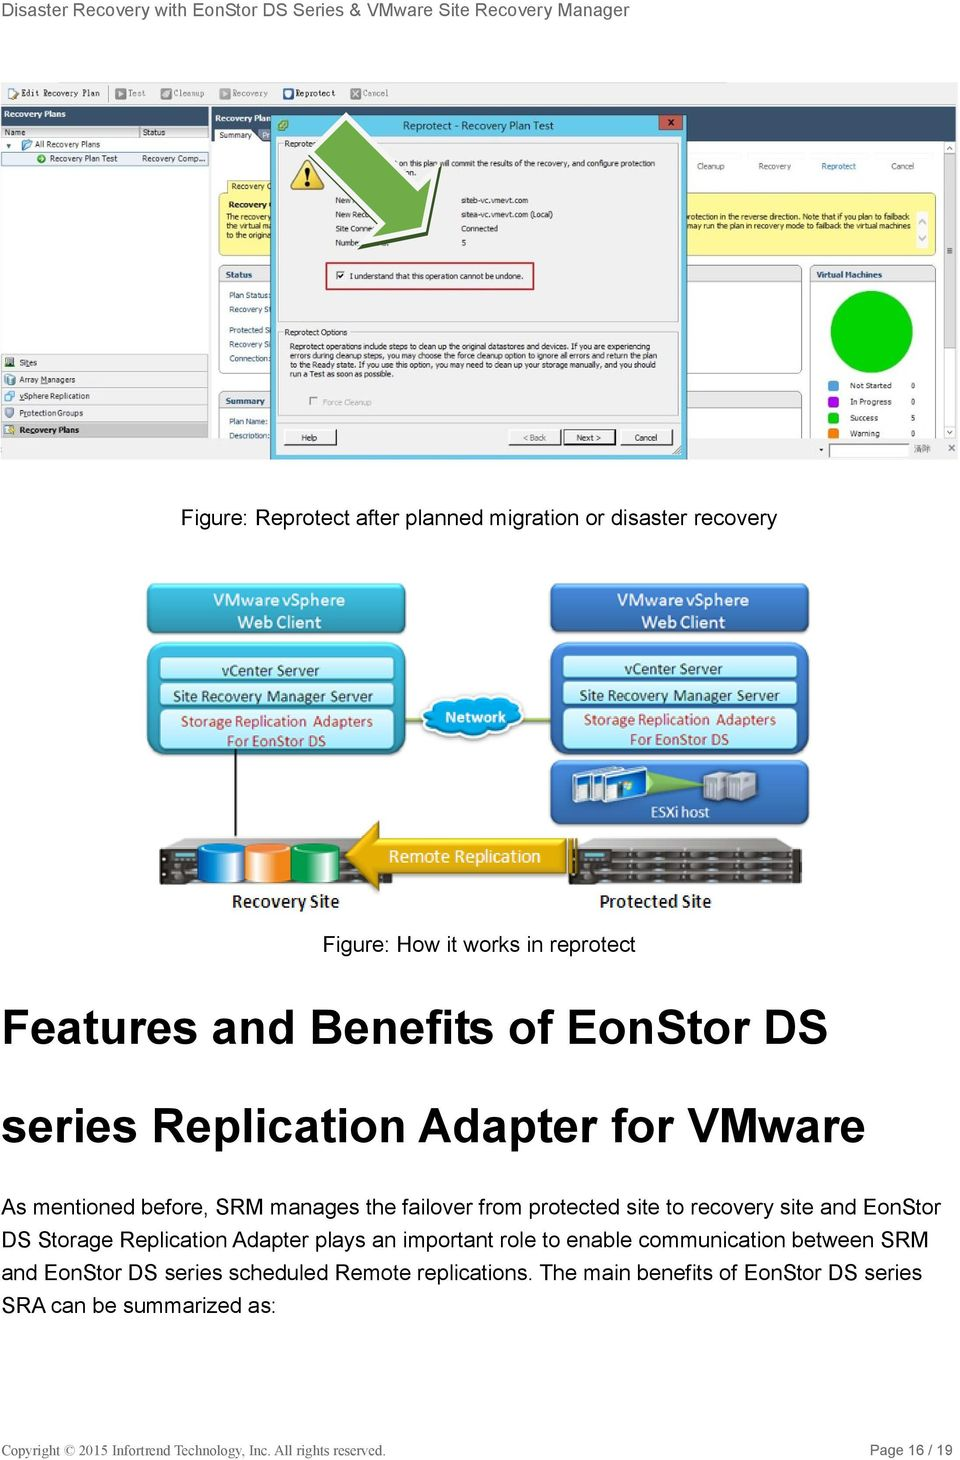 Storage Replication Adapter plays an important role to enable communication between SRM and EonStor DS series scheduled Remote